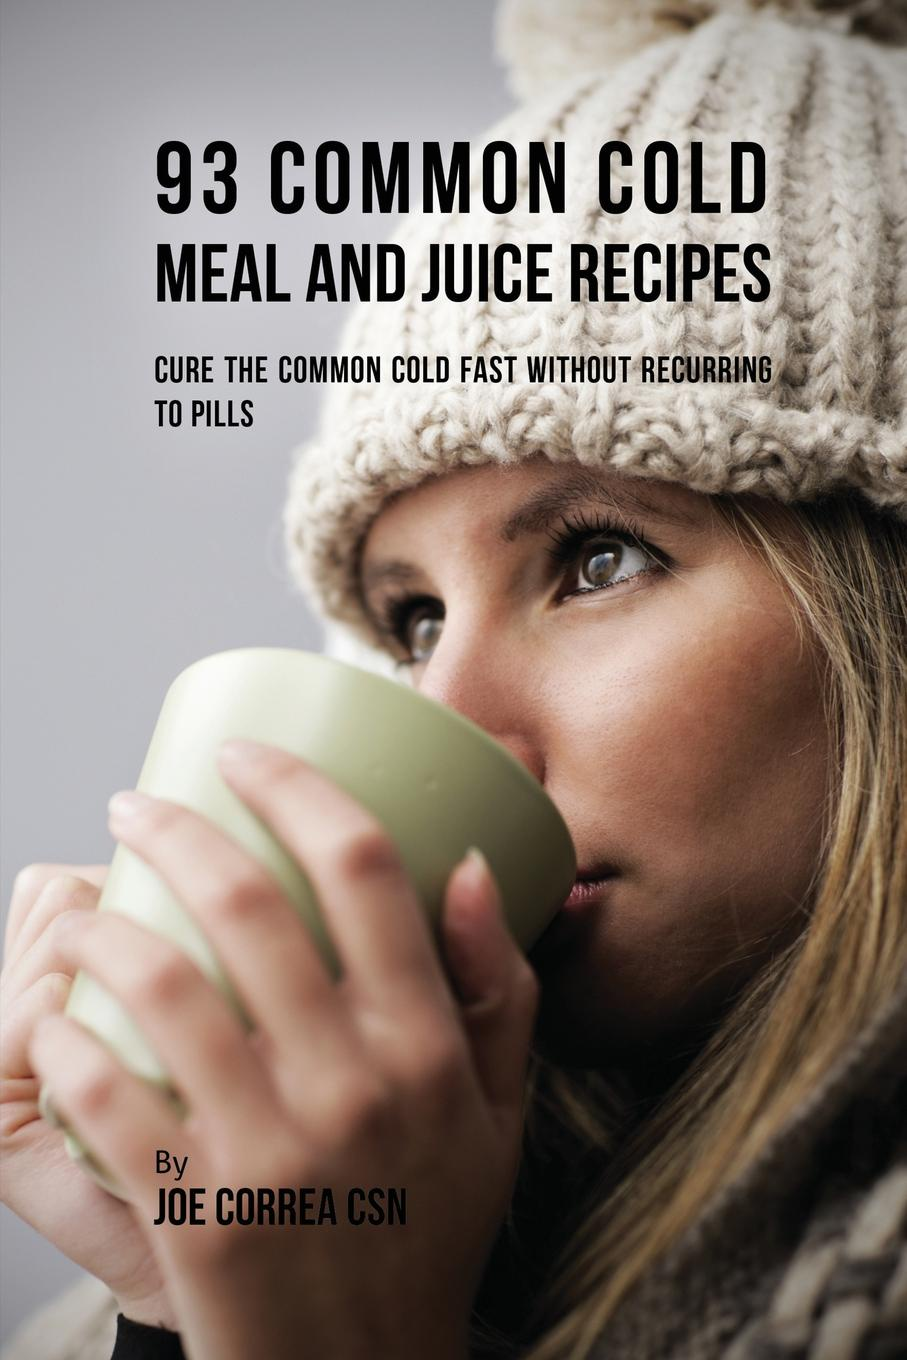 Joe Correa 93 Common Cold Meal and Juice Recipes. Cure the Common Cold Fast Without Recurring to Pills lauren sompayrac m how the immune system works